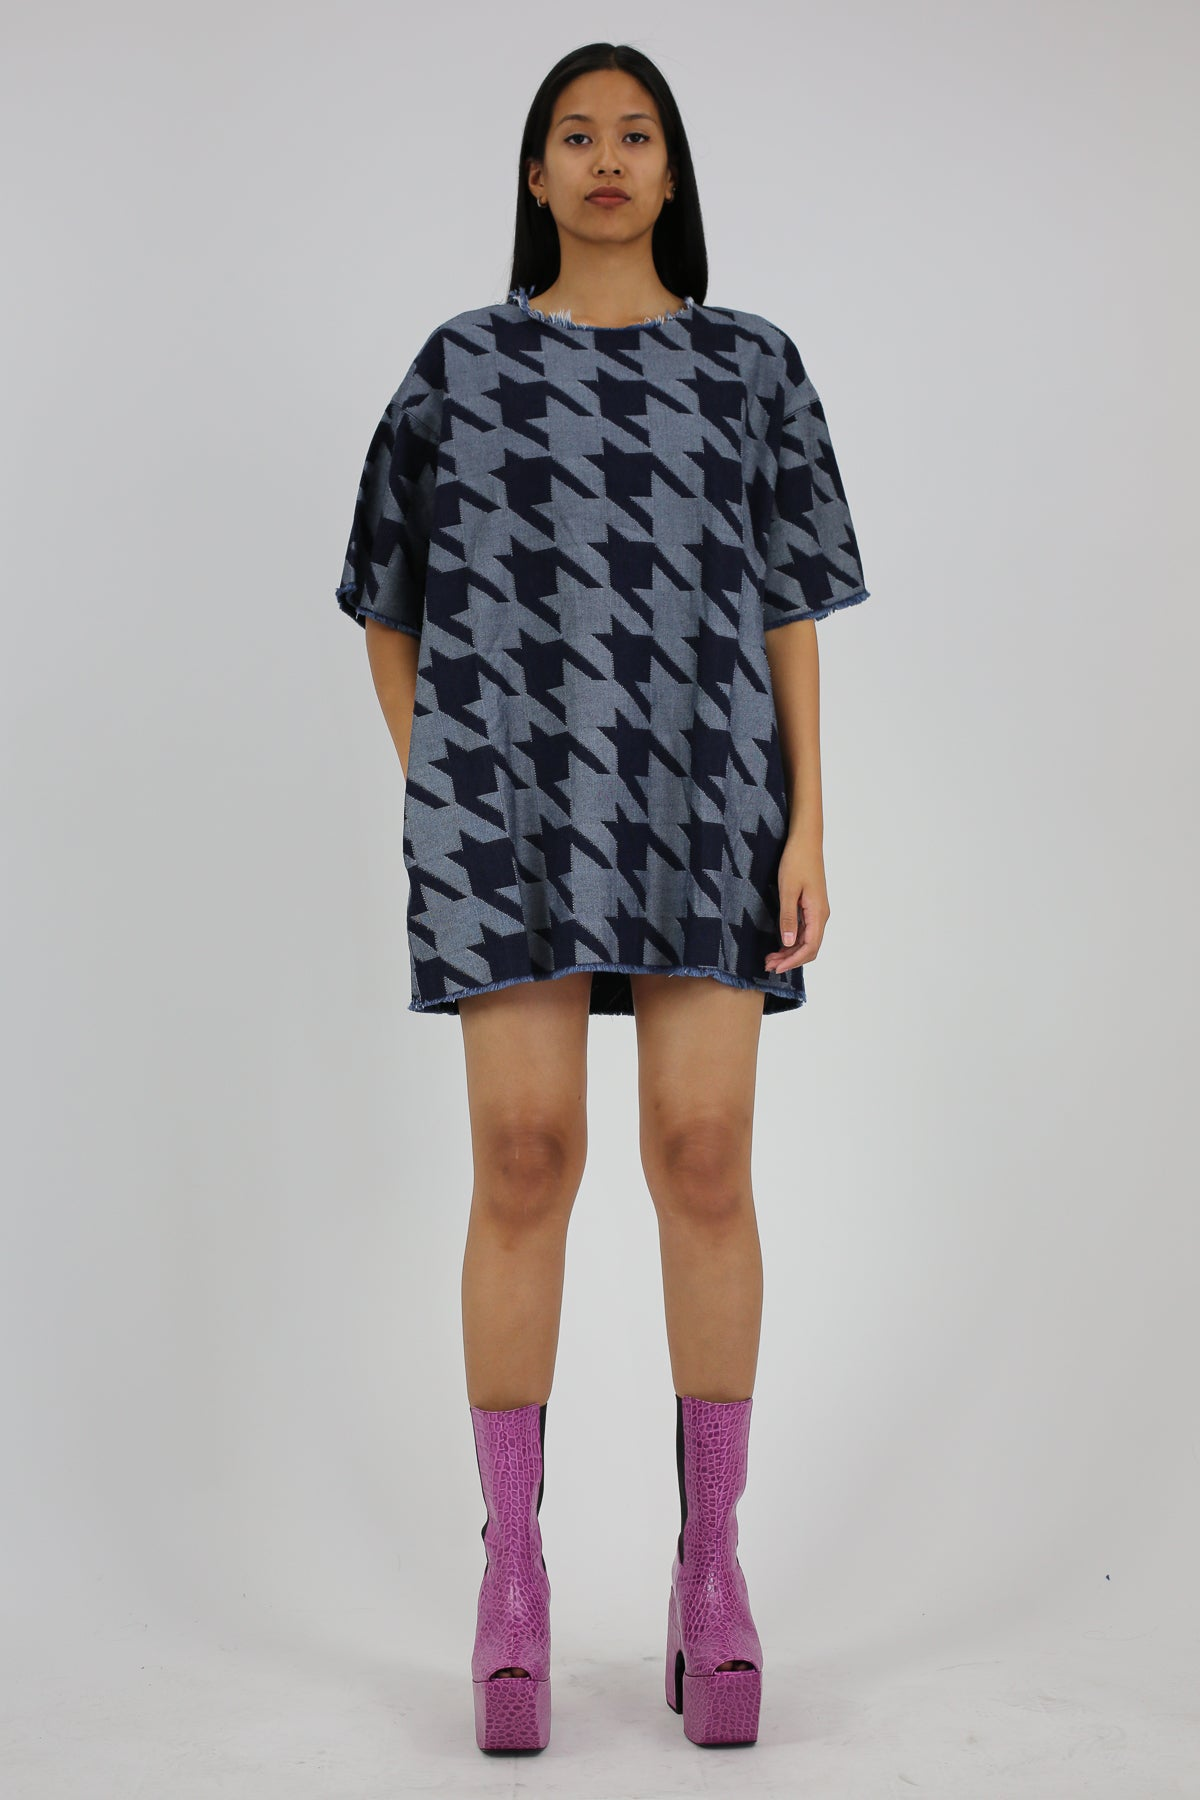 PRE-OWNED / DENIM HOUNDSTOOTH T-SHIRT DRESS - marques-almeida-dev